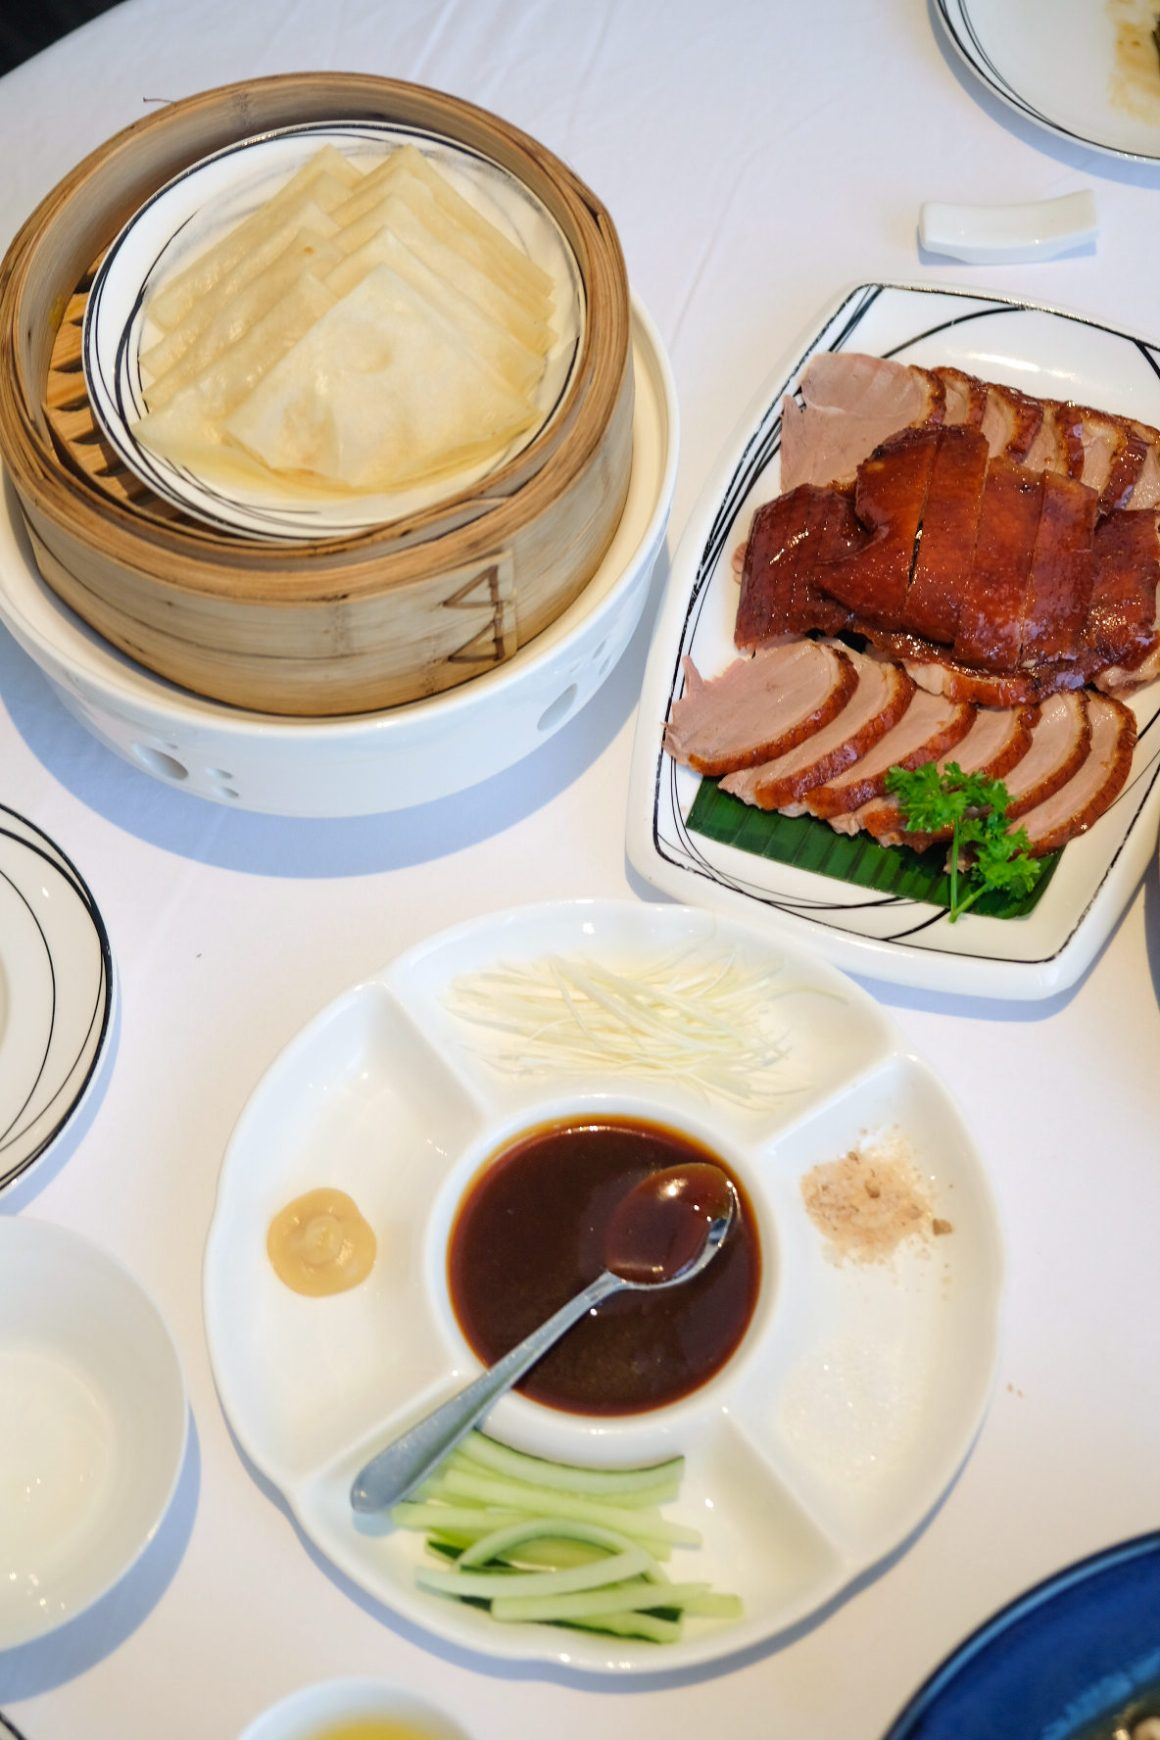 Forbidden Duck Singapore By 3 Michelin Stars Chef Alvin Leung - Forbidden Duck 鴨大哥 ($48-half/$78-whole)